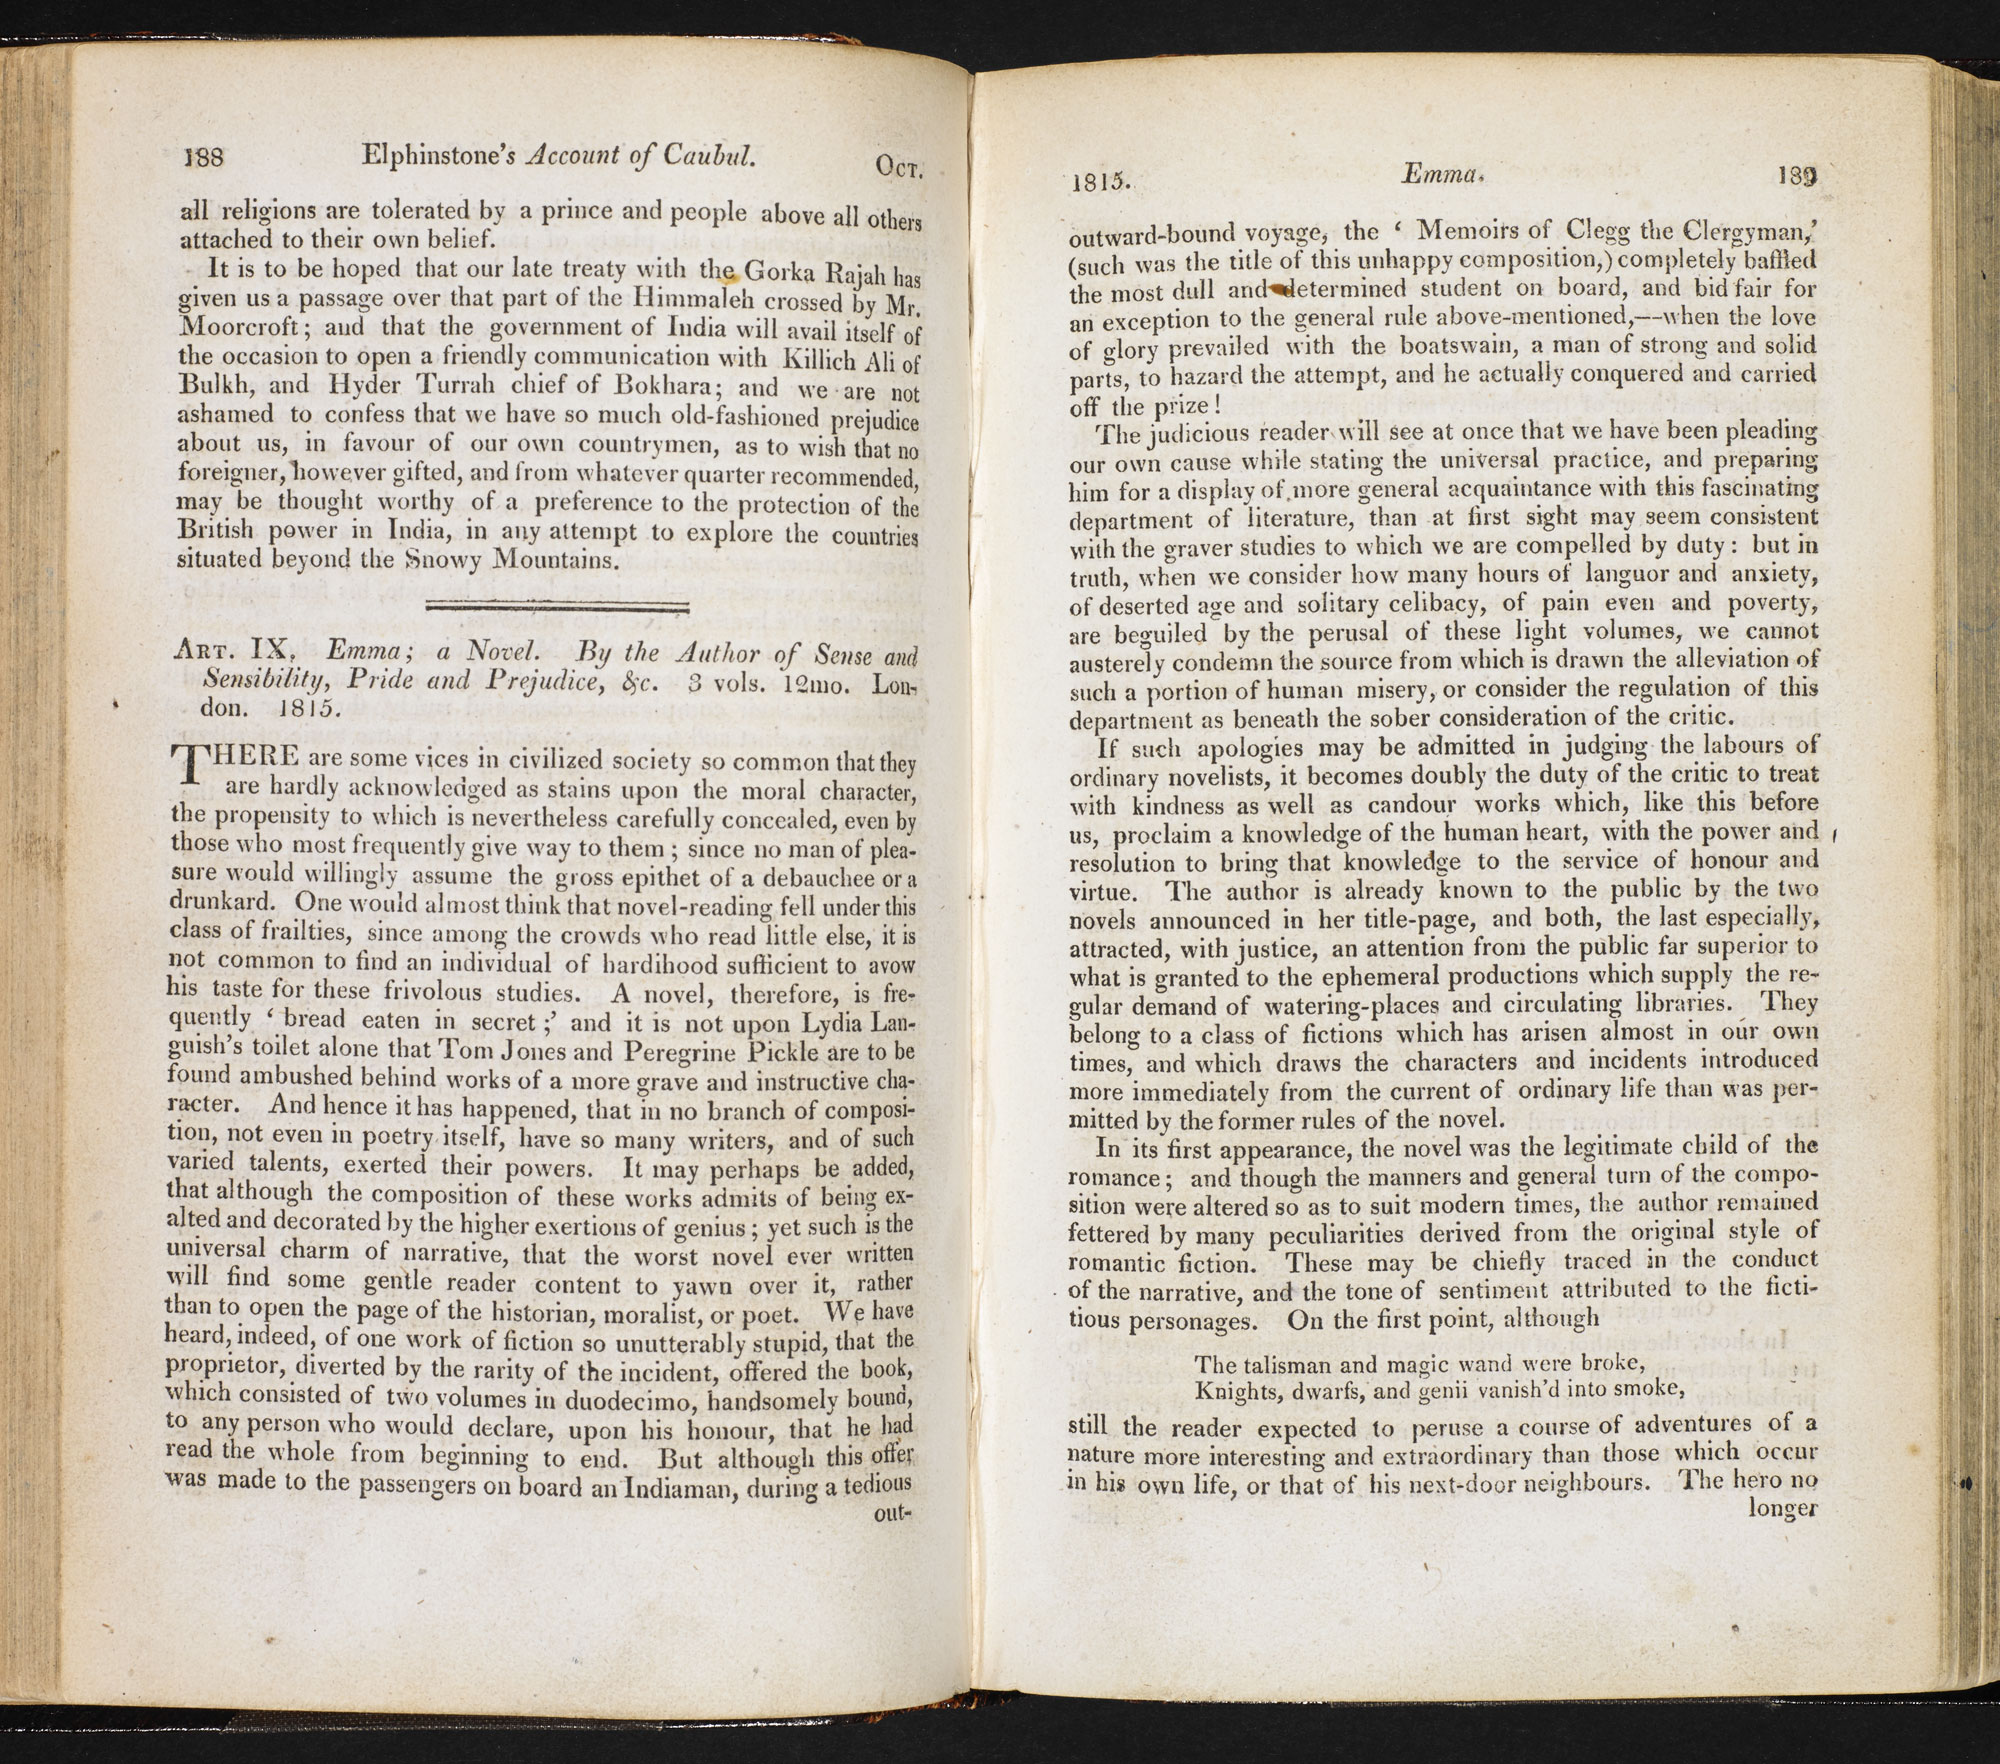 Review of Emma in the Quarterly Review, 1815 [page: 188-89]